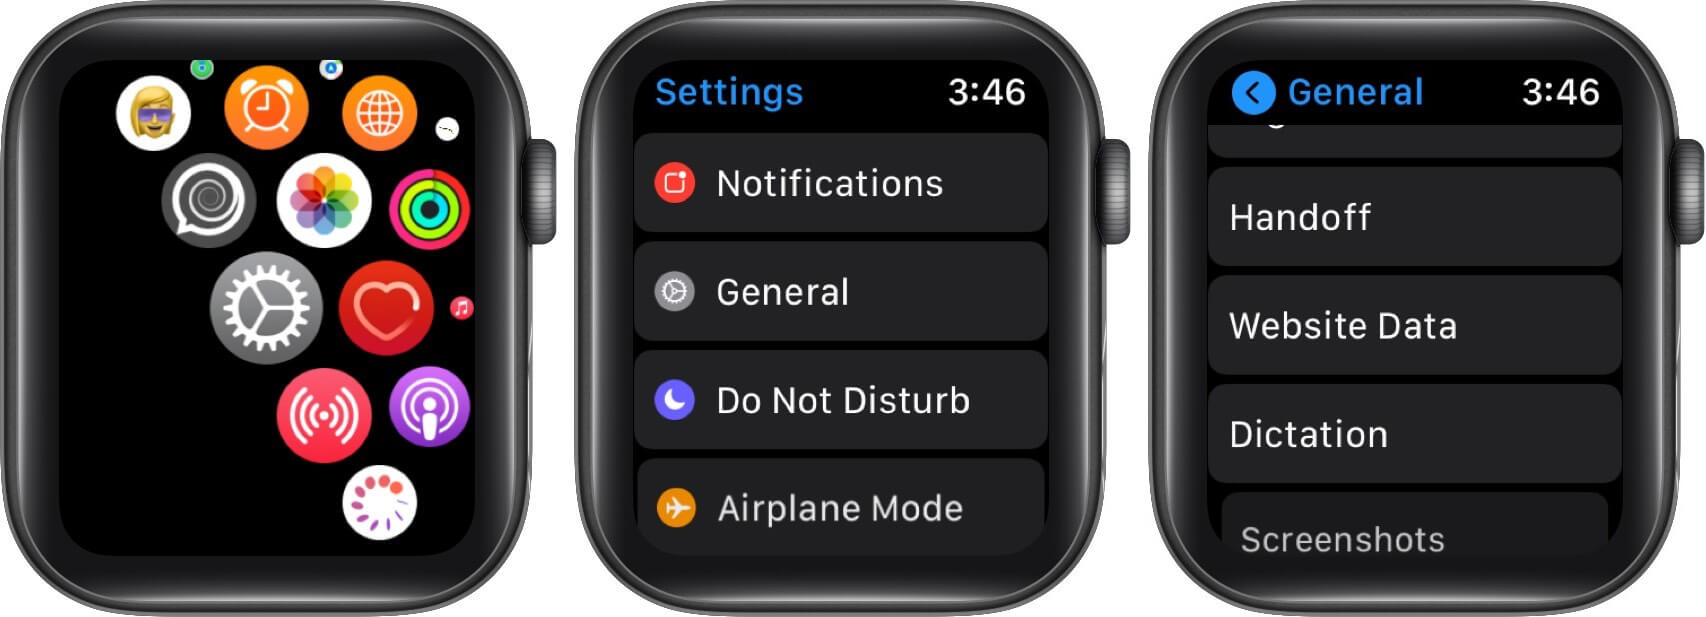 open settings tap on general and then tap on website data on apple watch